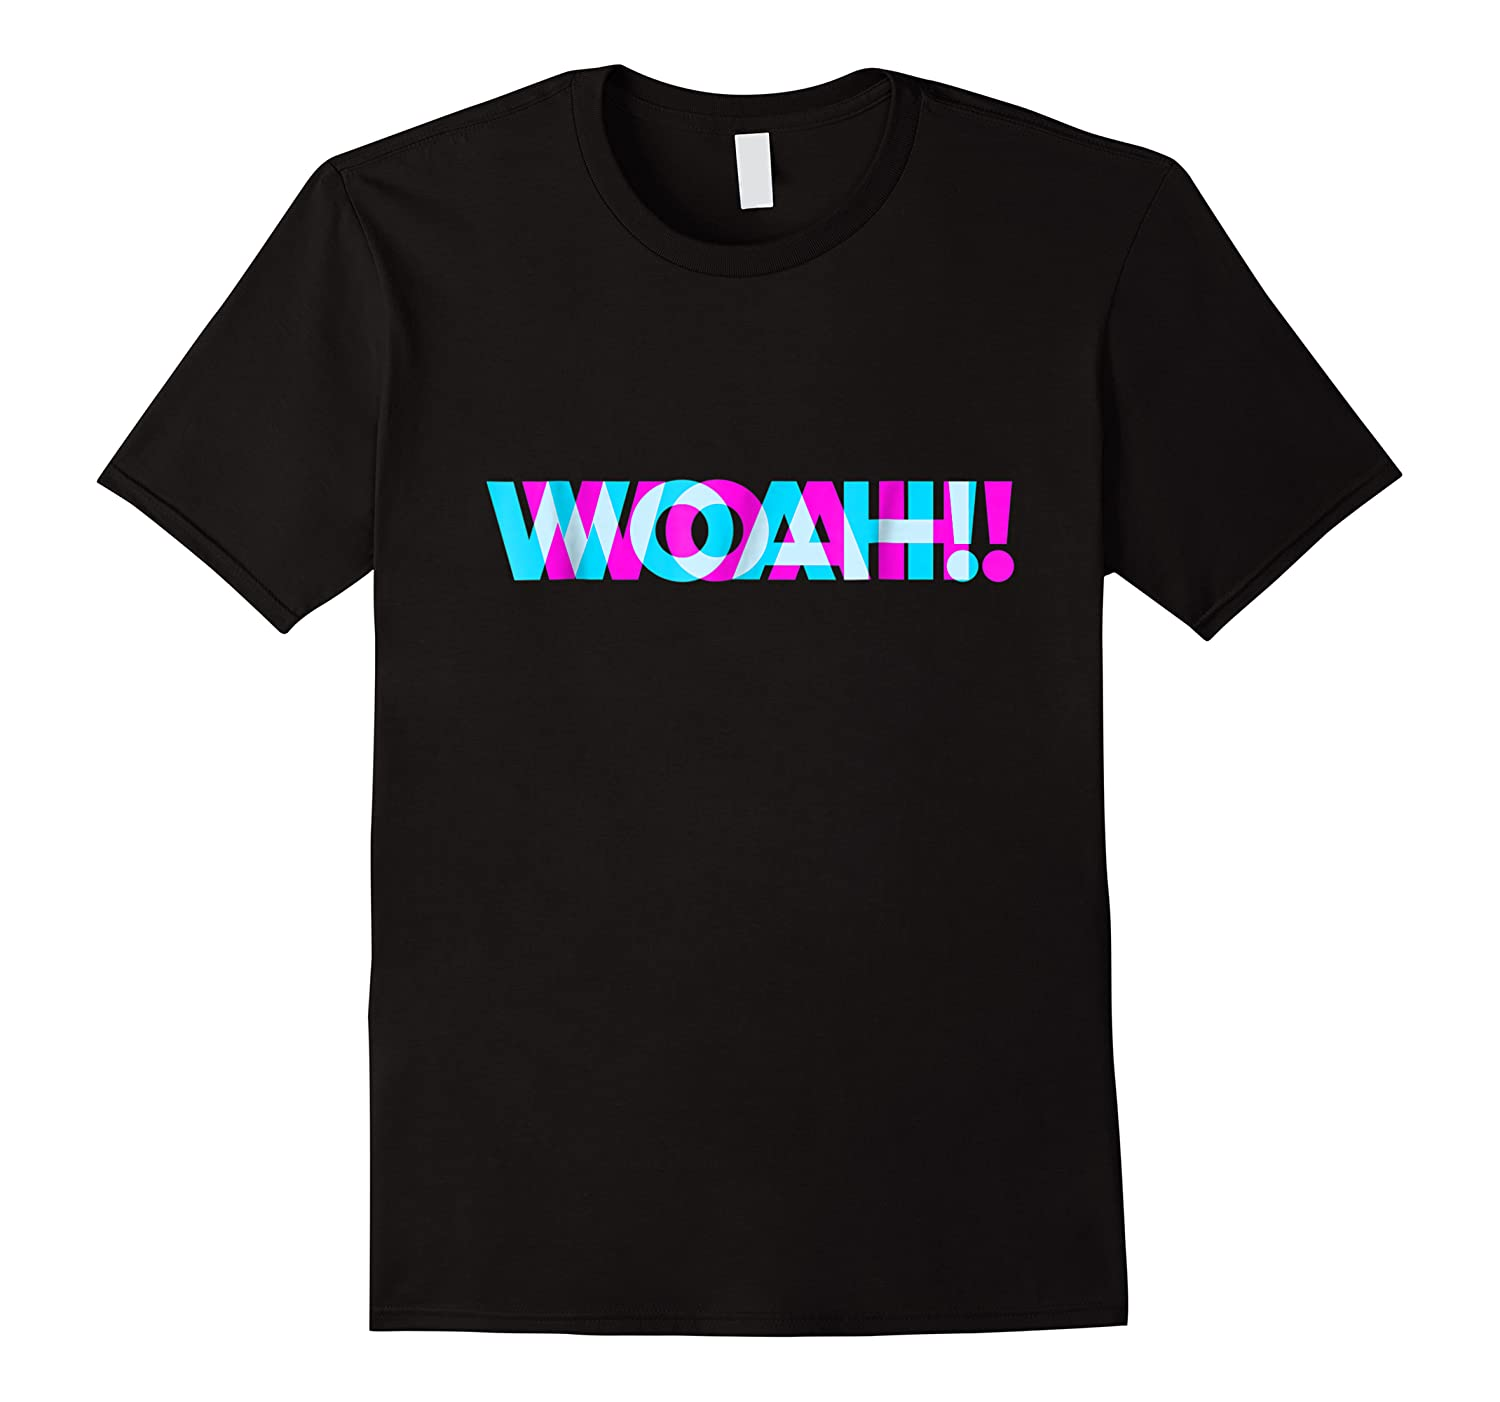 Woah Trippy 3d Effect Blurry Typography Shirts